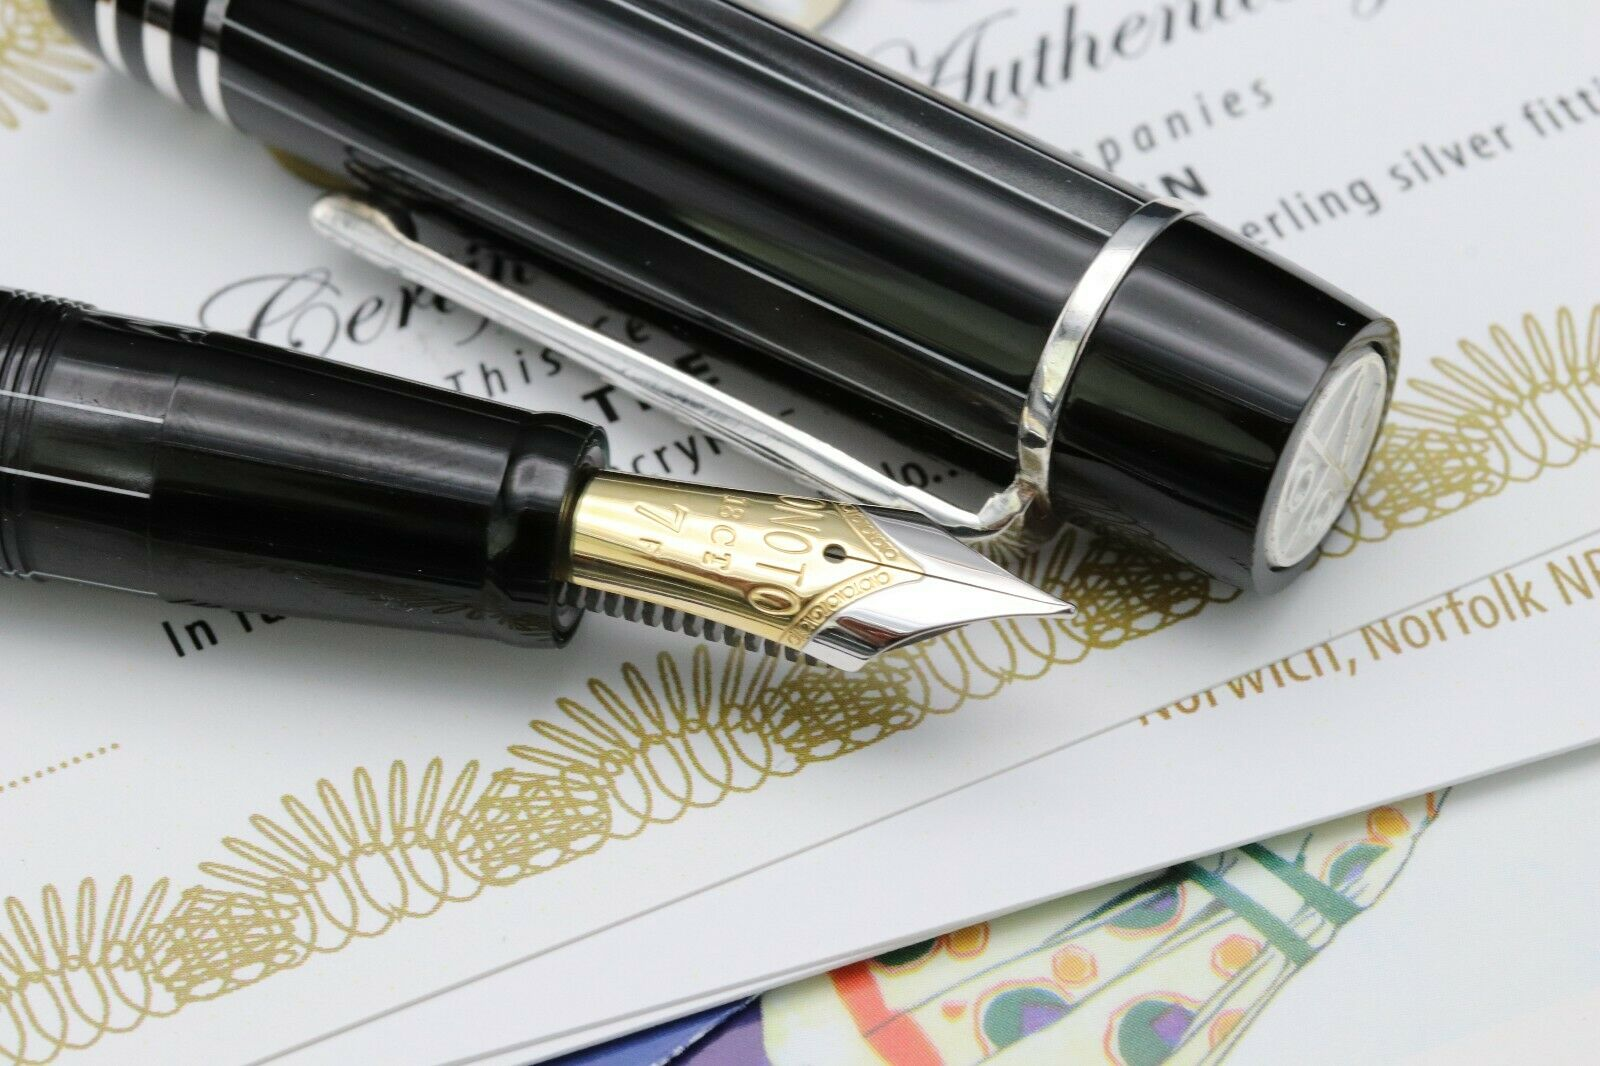 Onoto Magna Charles Dickens Pickwick Limited Edition Fountain Pen - UNUSED 3